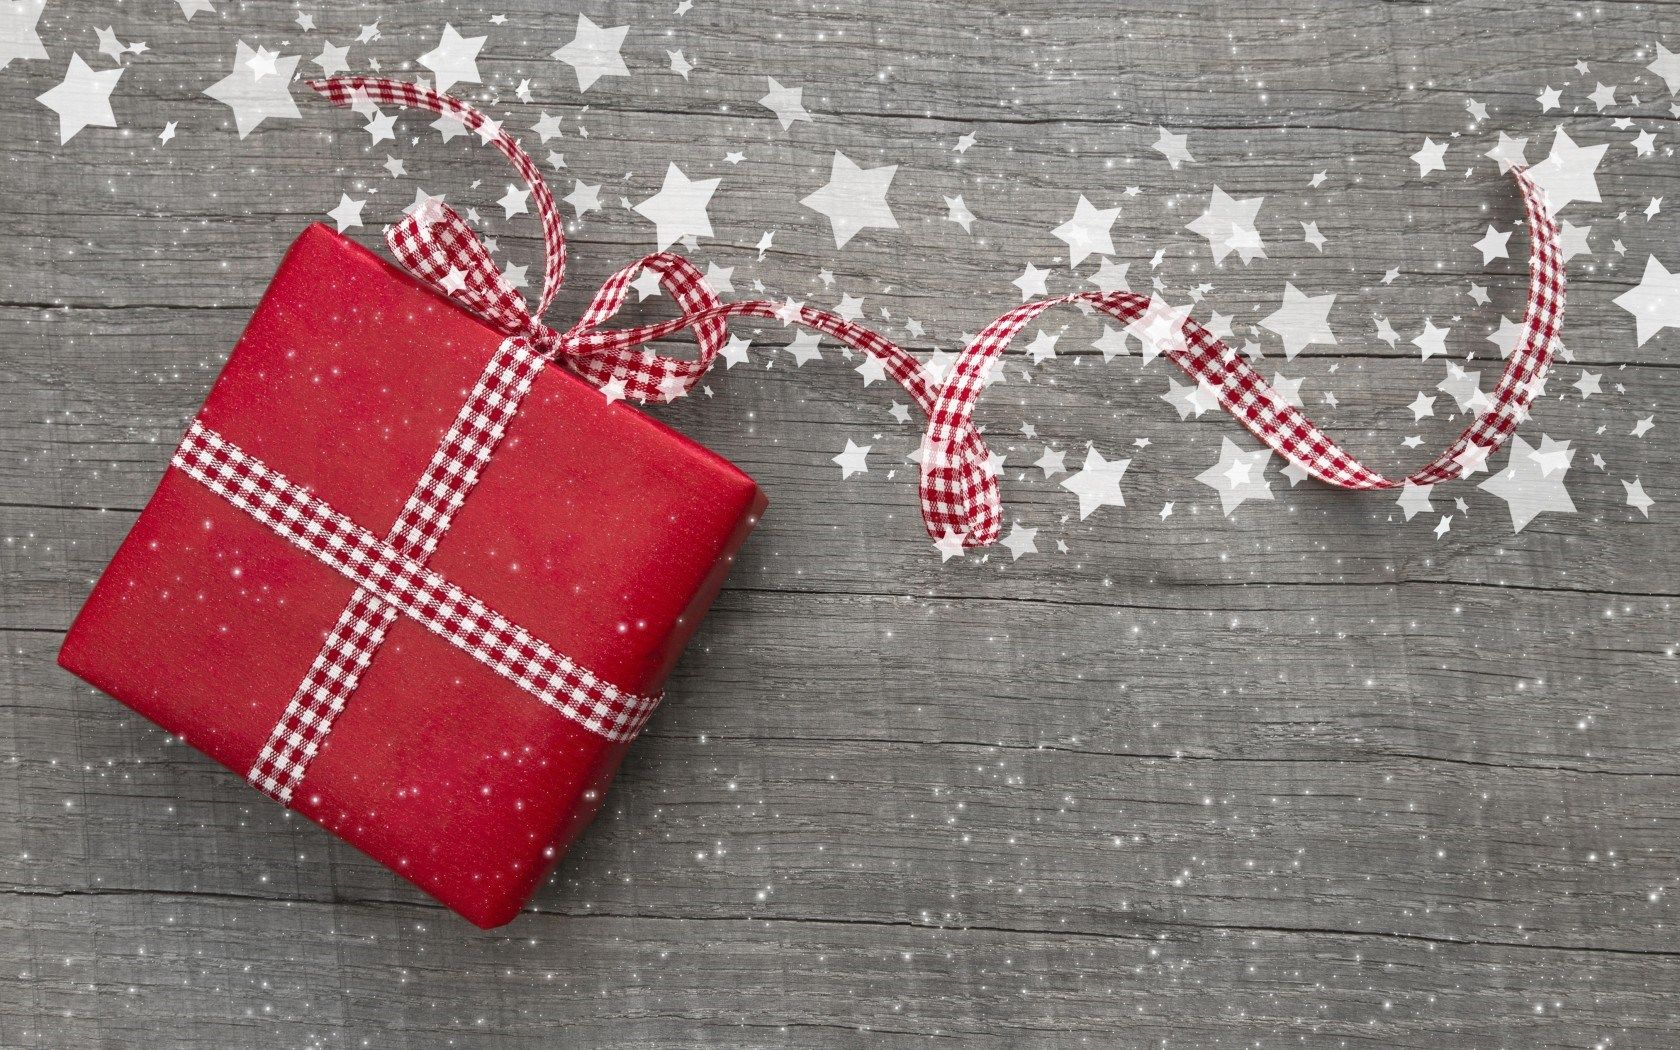 Gift stars christmas new year holiday tl pinterest holidays gift stars christmas new year holiday negle Gallery